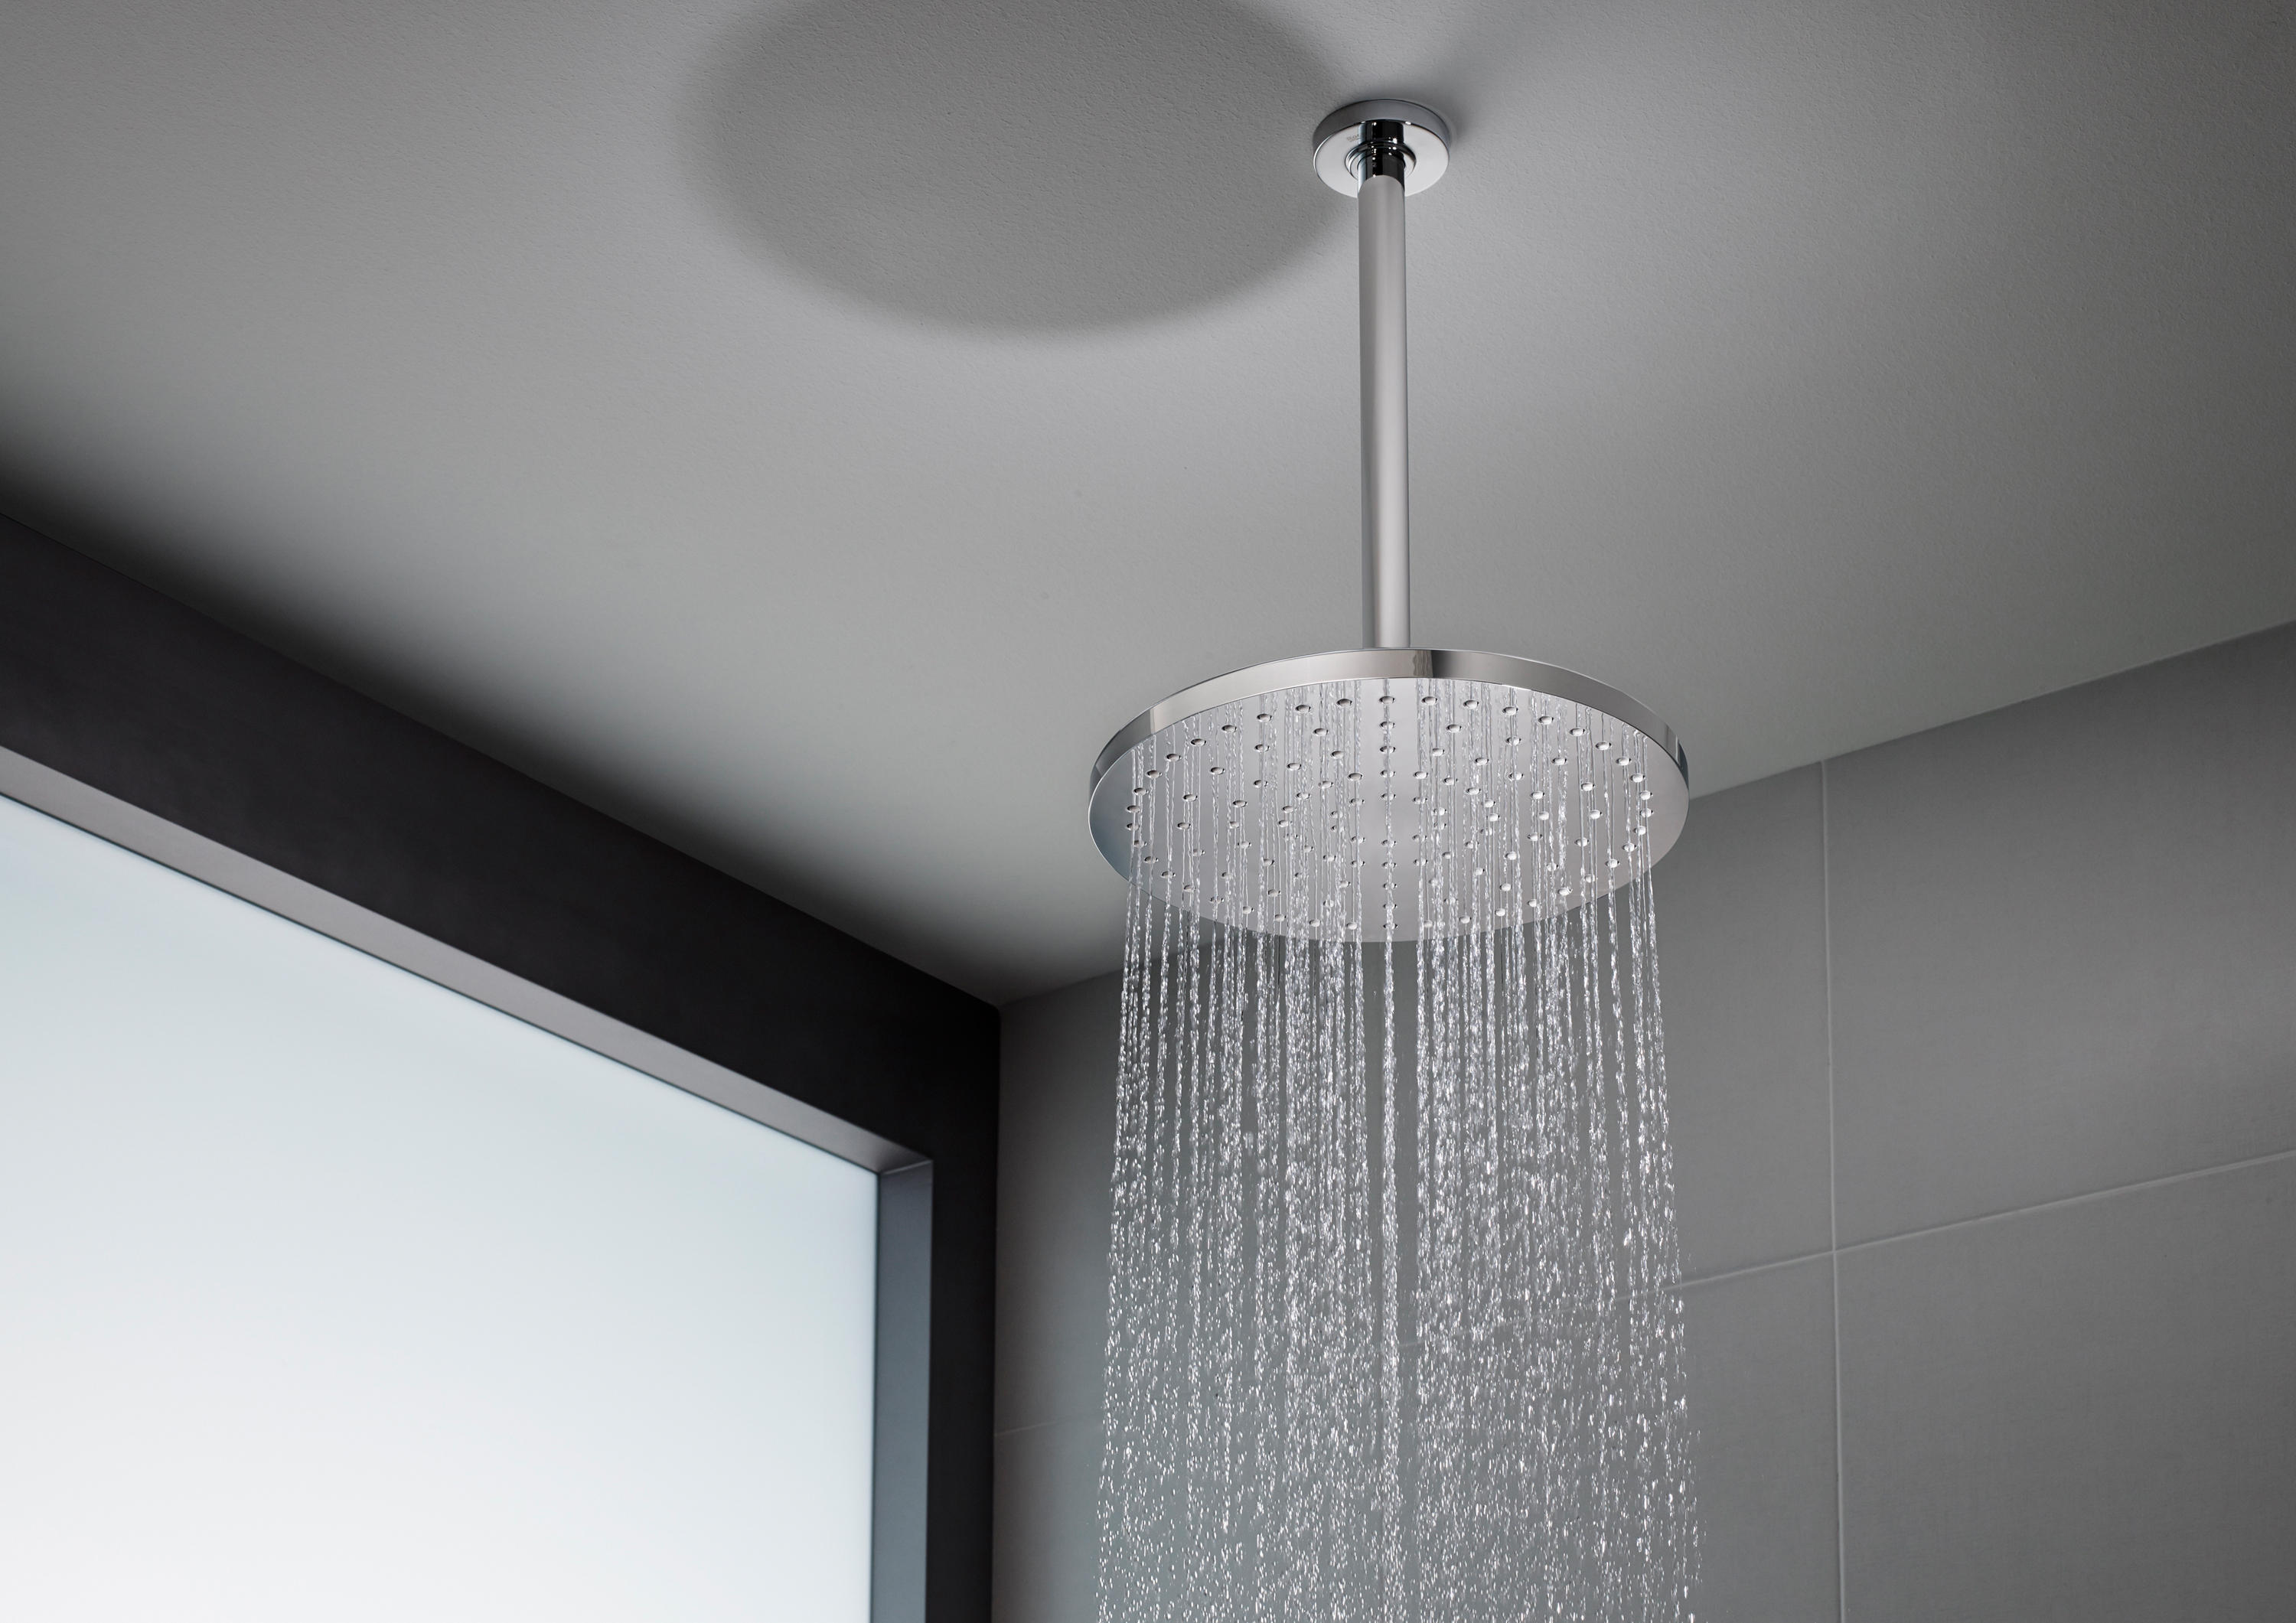 rainsense shower head shower controls from roca architonic